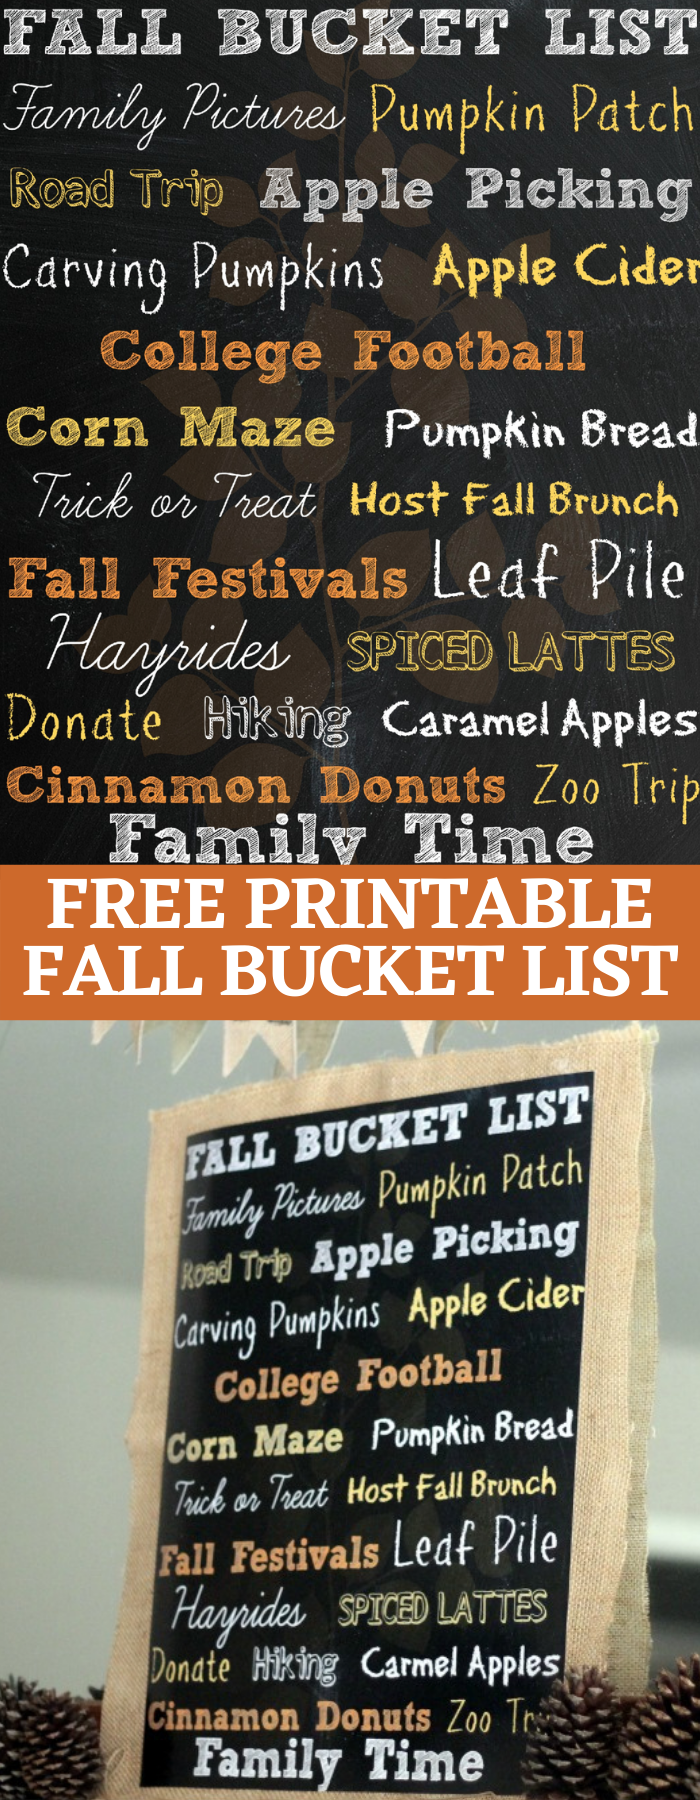 This FREE Printable Fall Bucket List will be the cutest fall decor in you house!